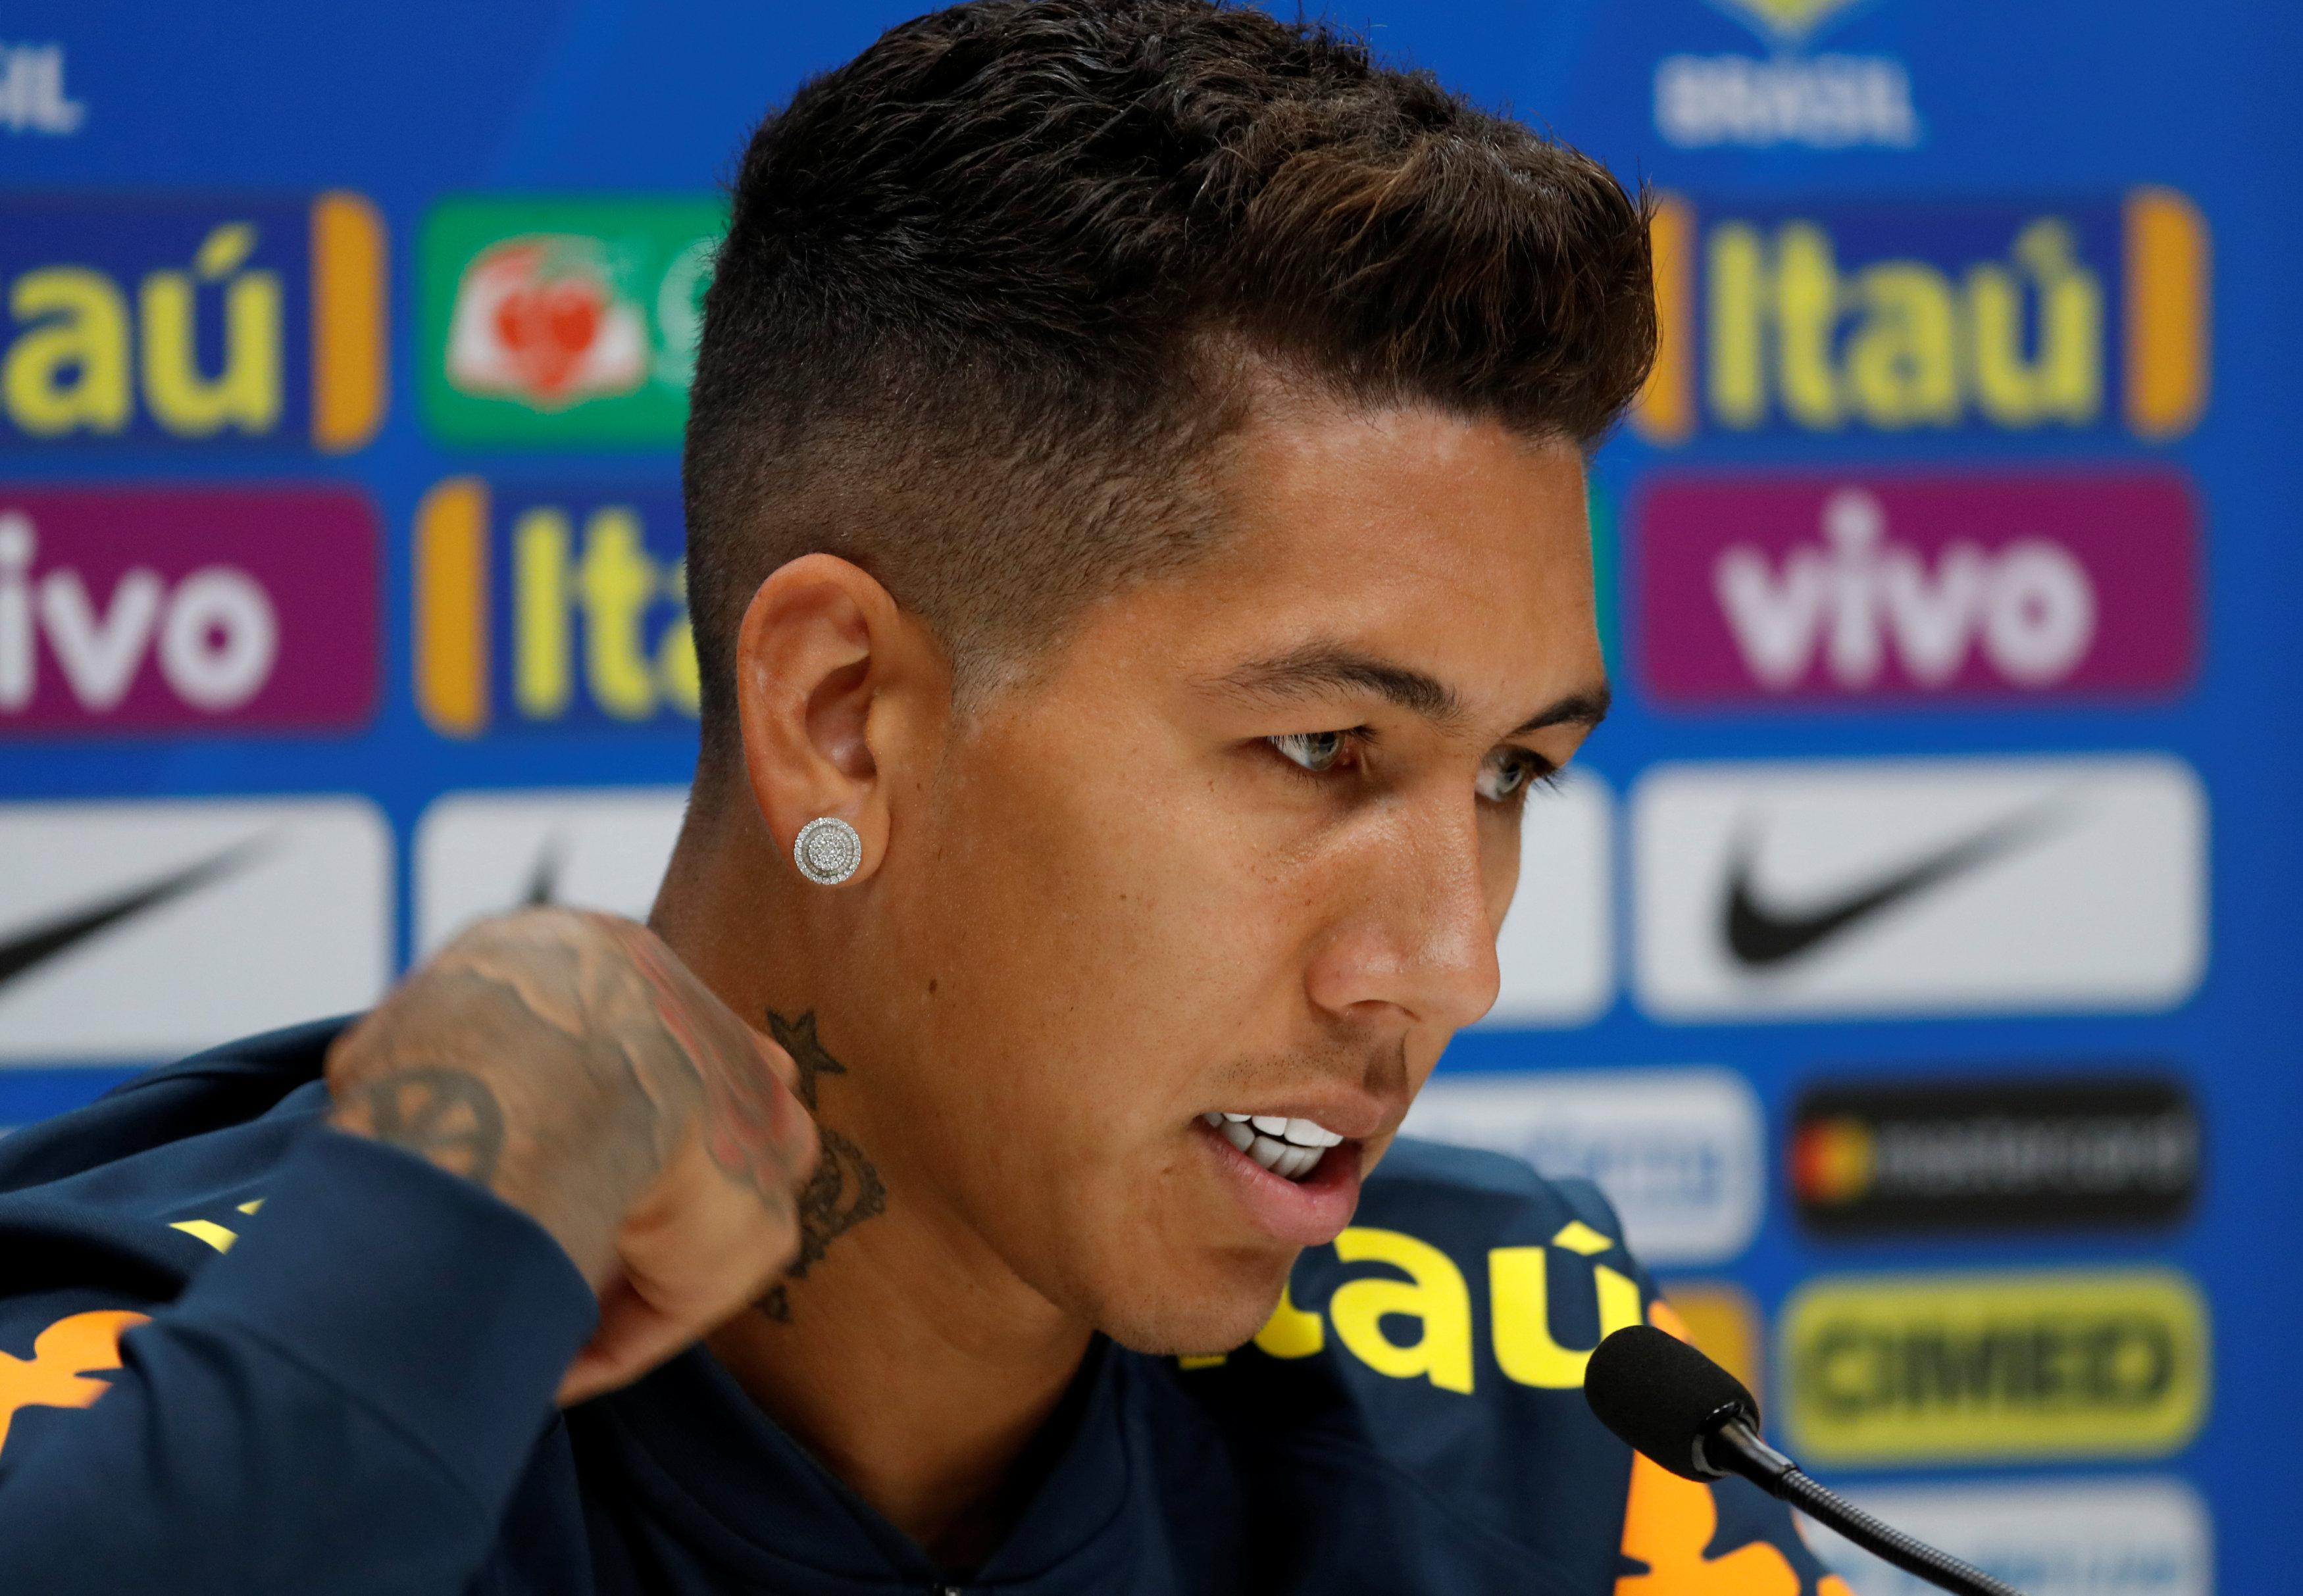 The Brazilian striker said Ramos is a champion but that it was wrong to say